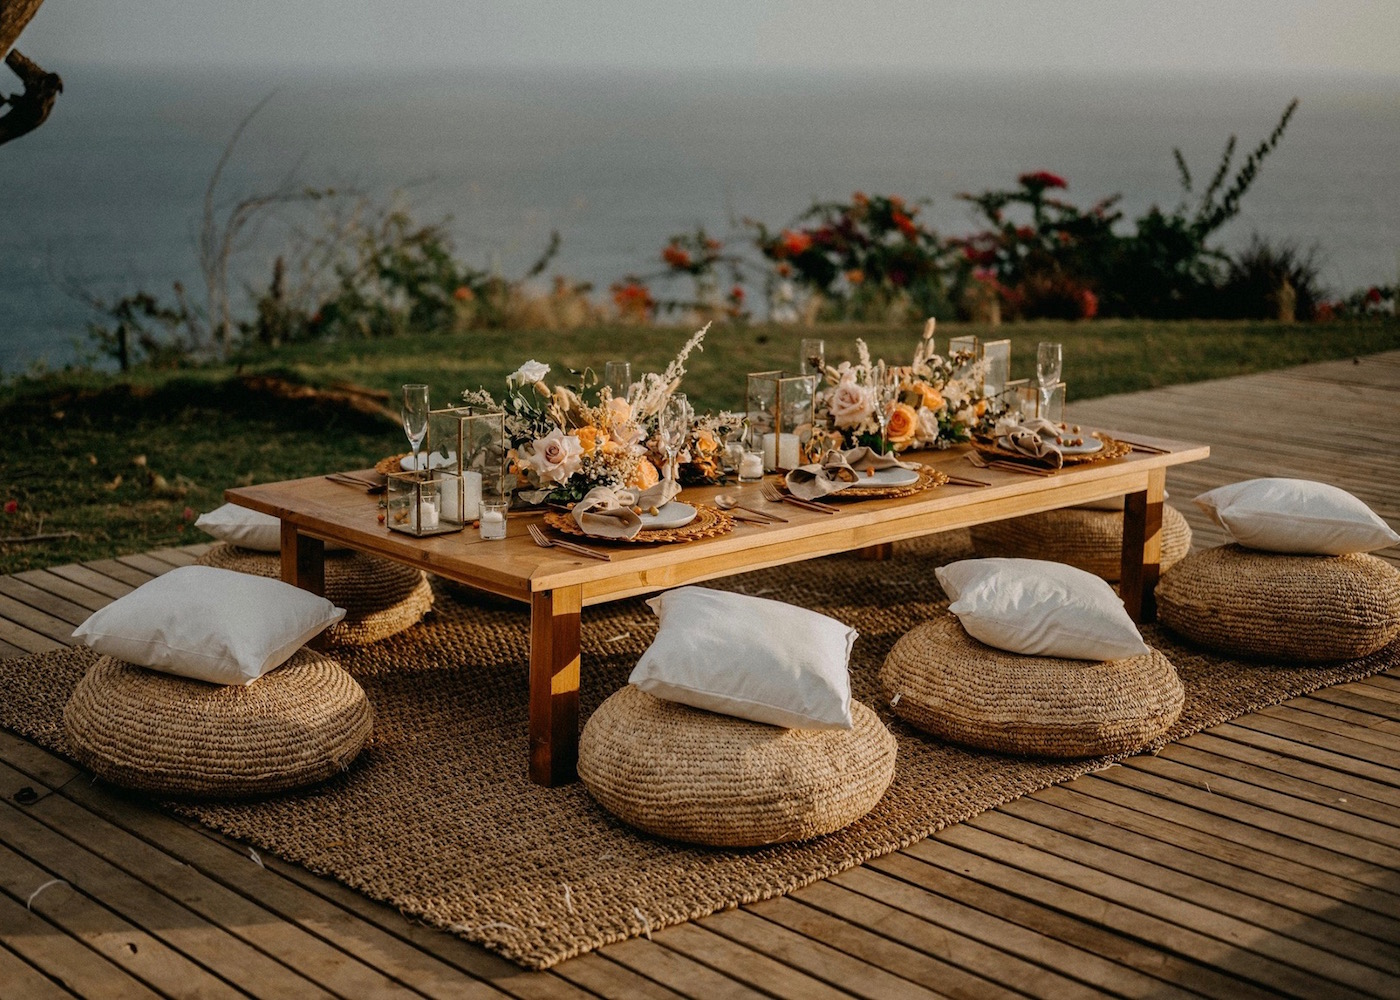 Wonderland Uluwatu - one of the best wedding and events venues in Bali, Indonesia